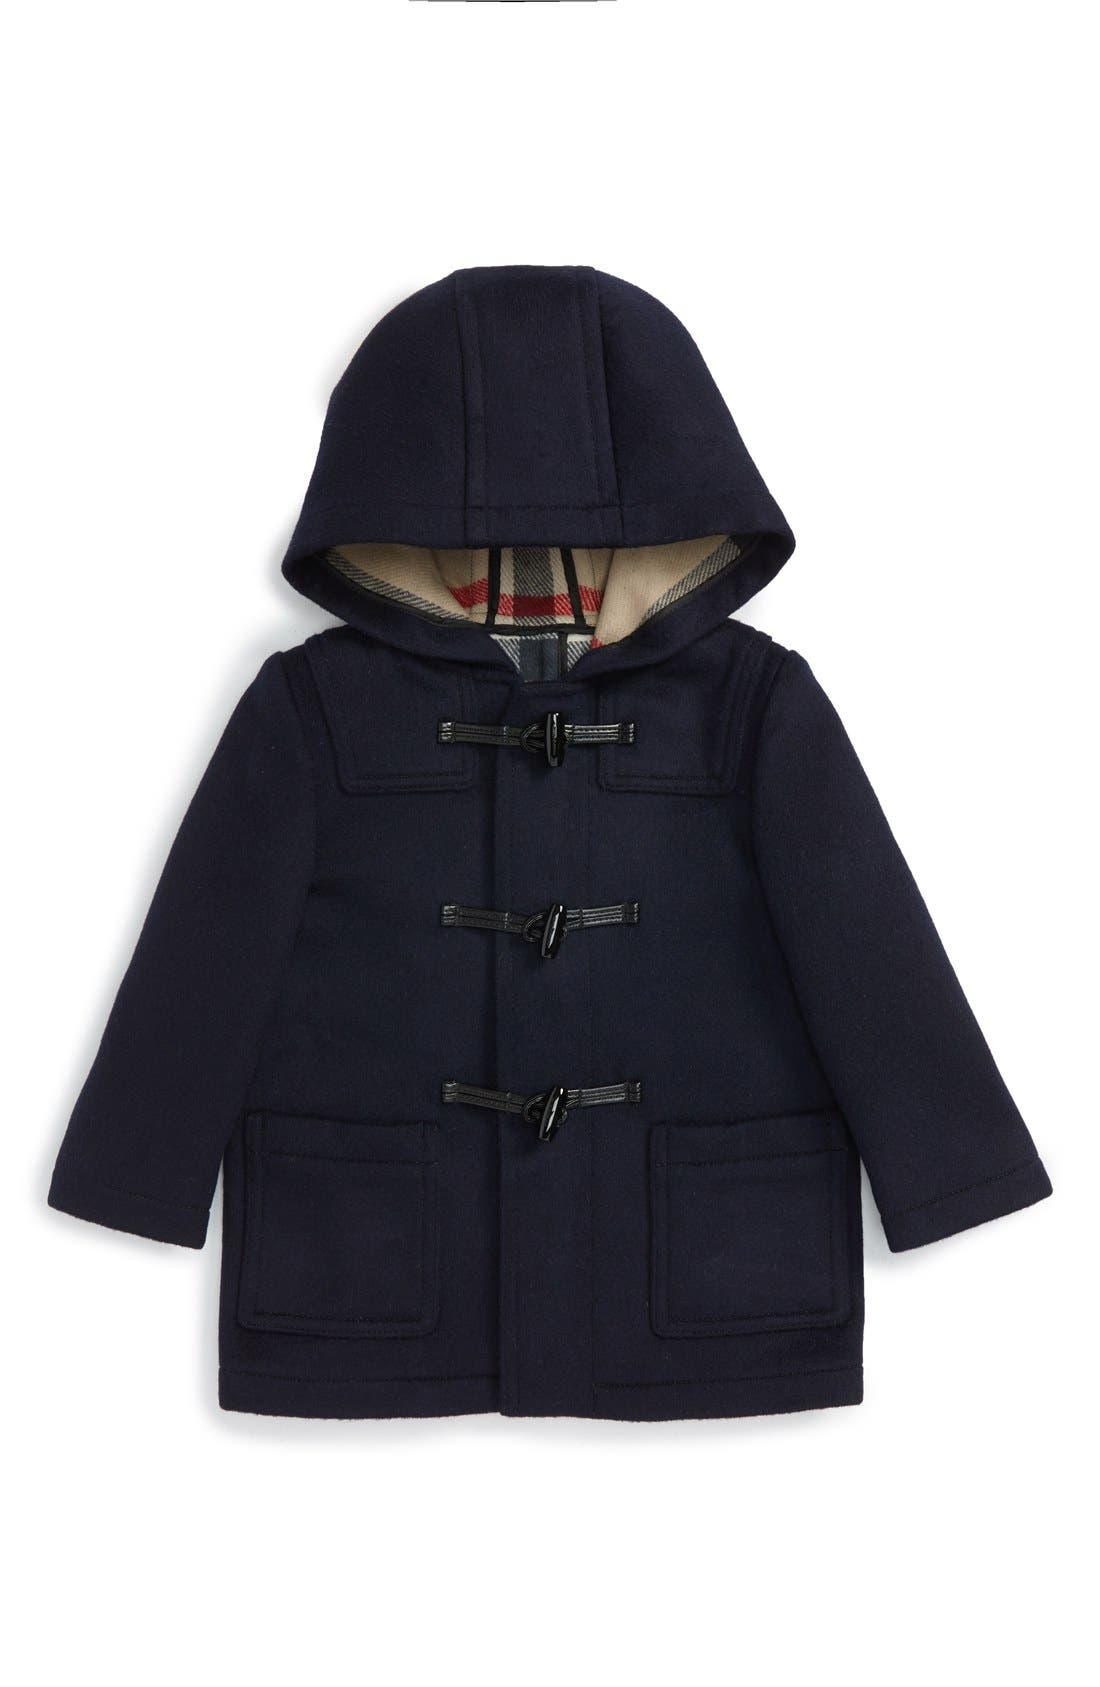 'Brogan' Hooded Wool Toggle Coat,                             Main thumbnail 1, color,                             Dark Indigo